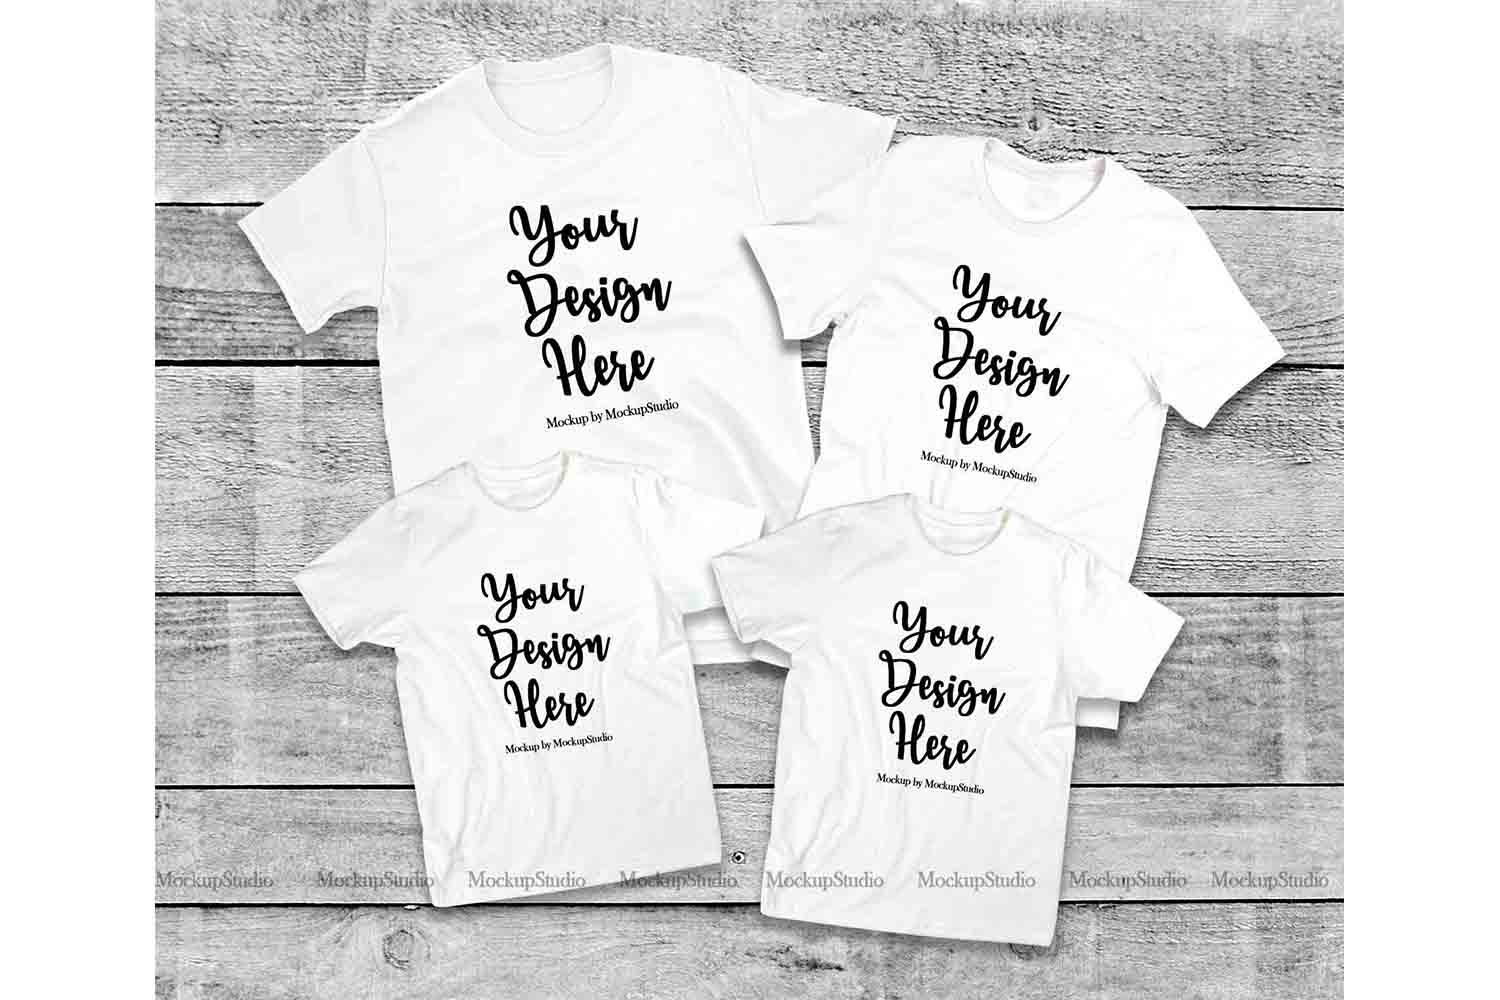 Matching Family White T-Shirts Mockup, 4 Parents Kids Shirts example image 1